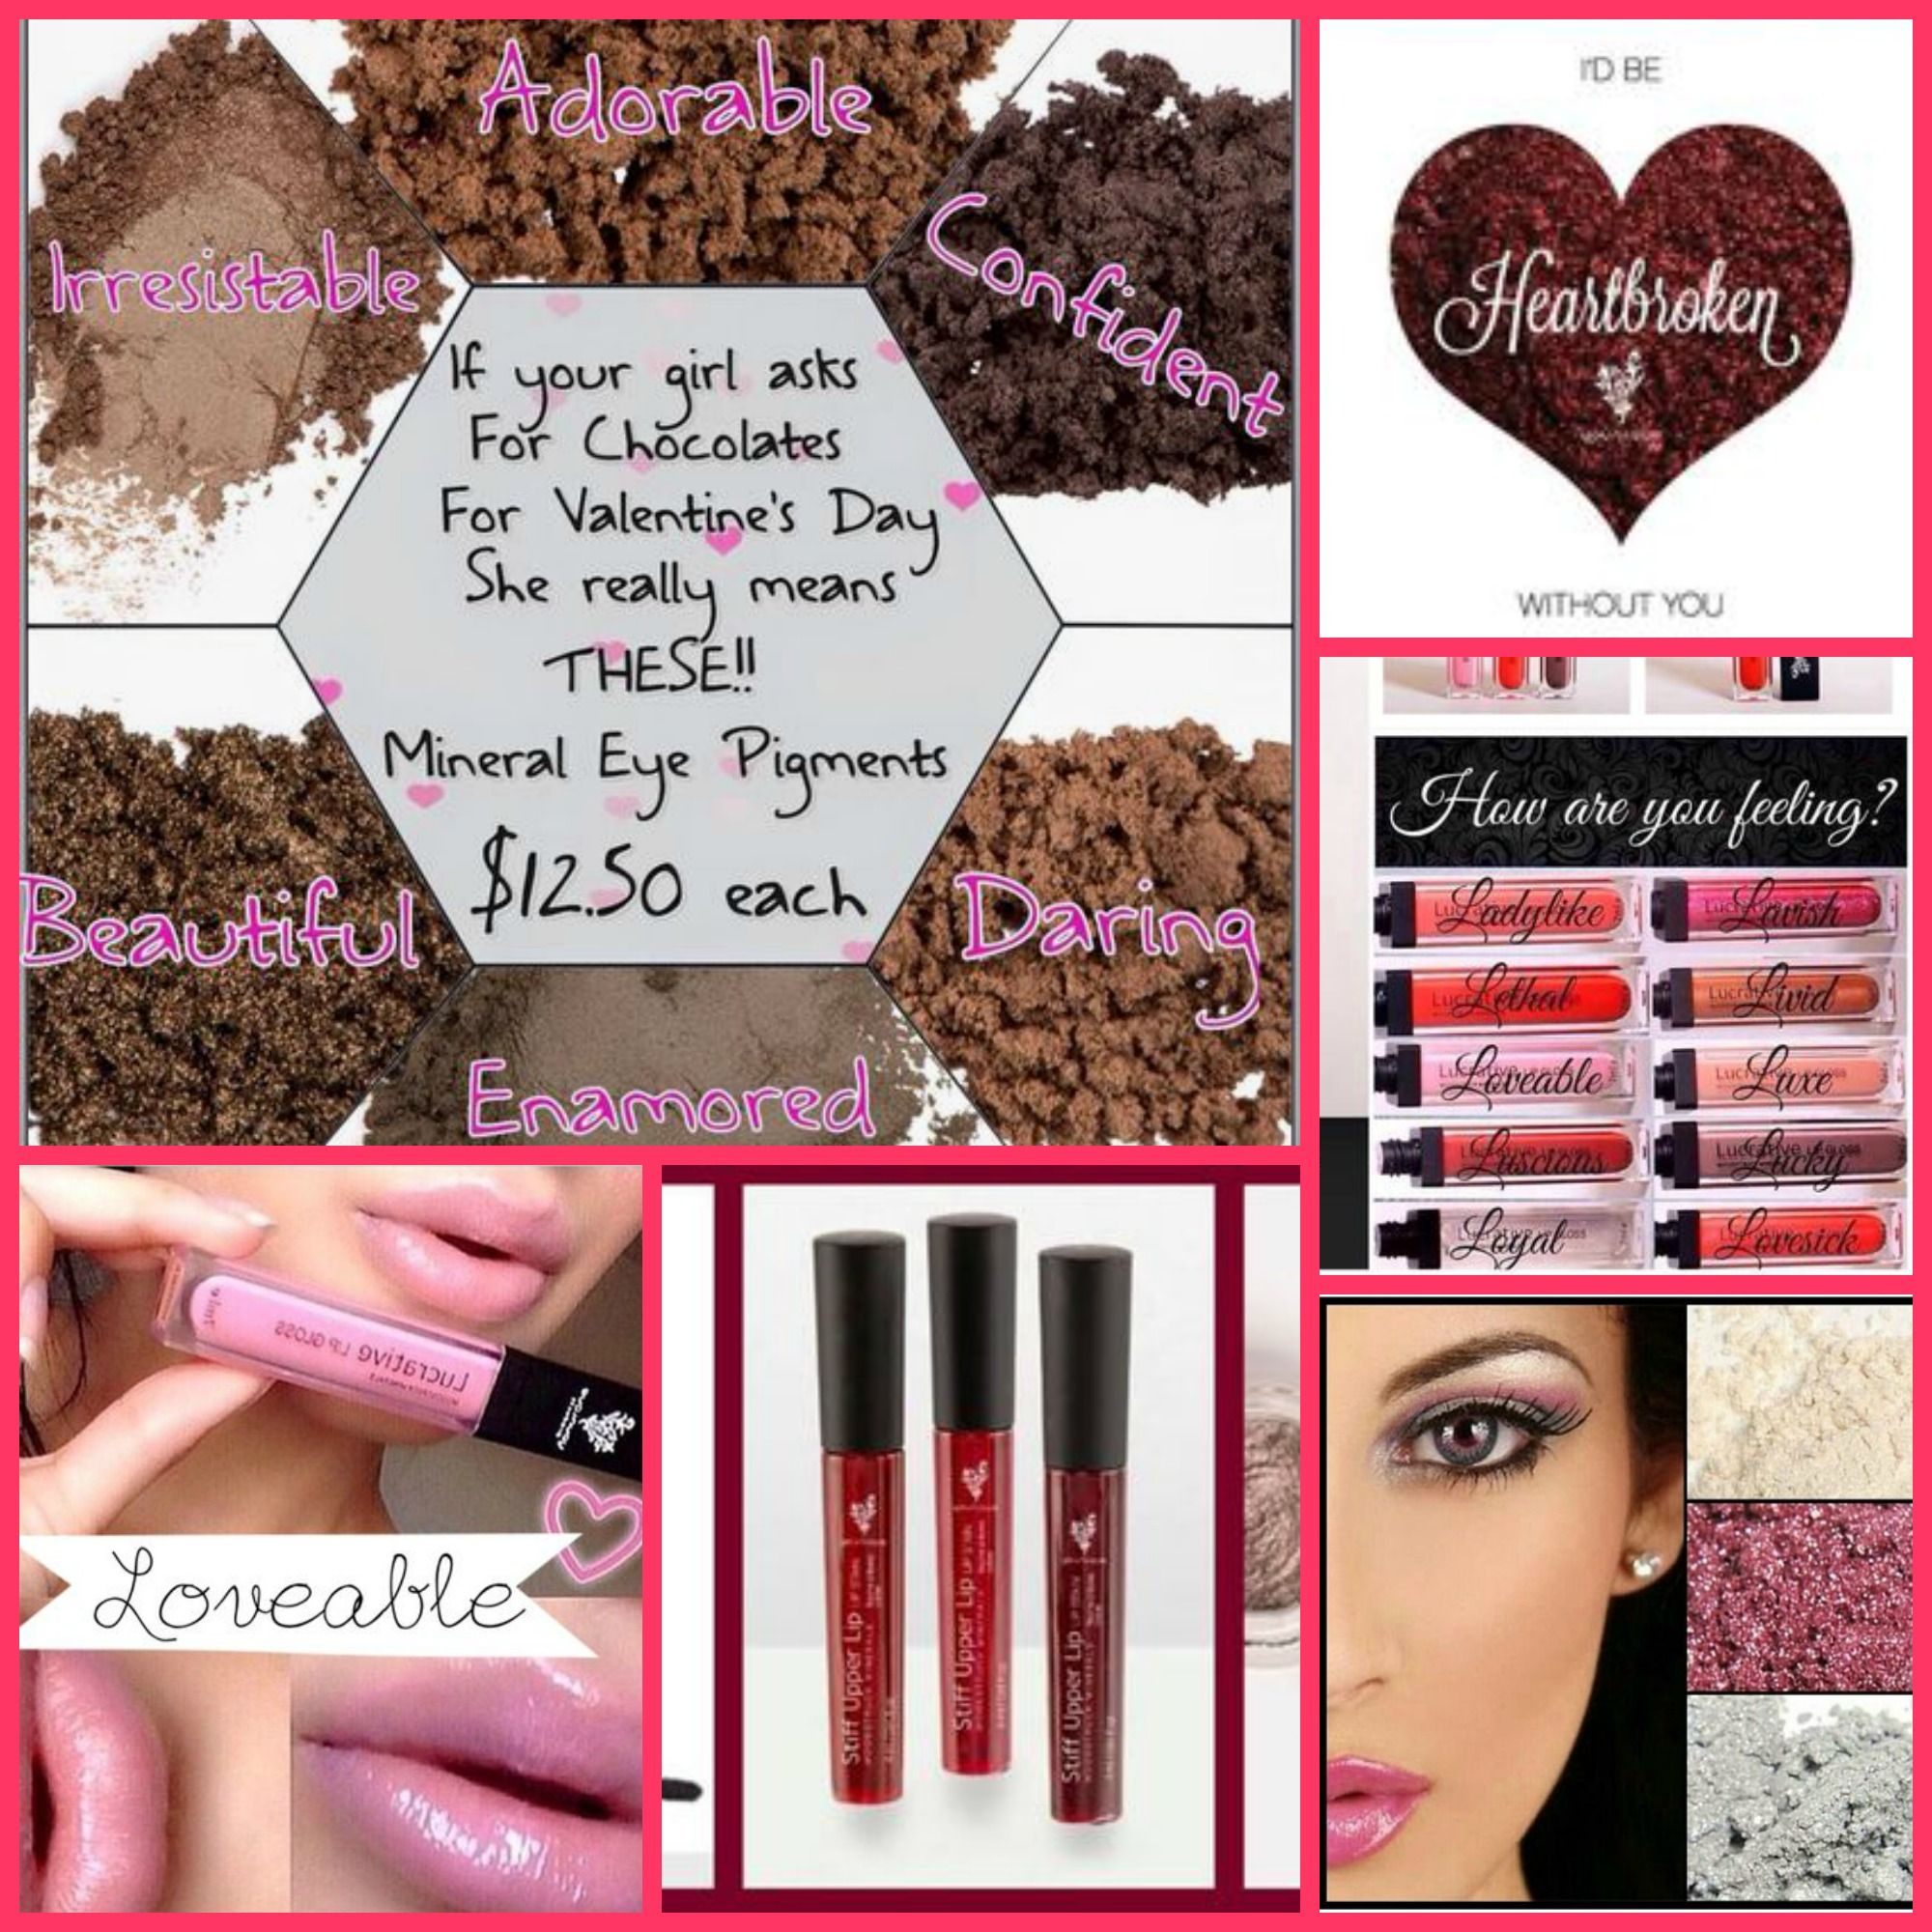 Ladies!! Get that perfect makeup look in time for Valentine's Day! <3 Remember, purchases of $50 or more get you FREE shipping!! take a look at my website here! https://www.youniqueproducts.com/akyle/products/landing